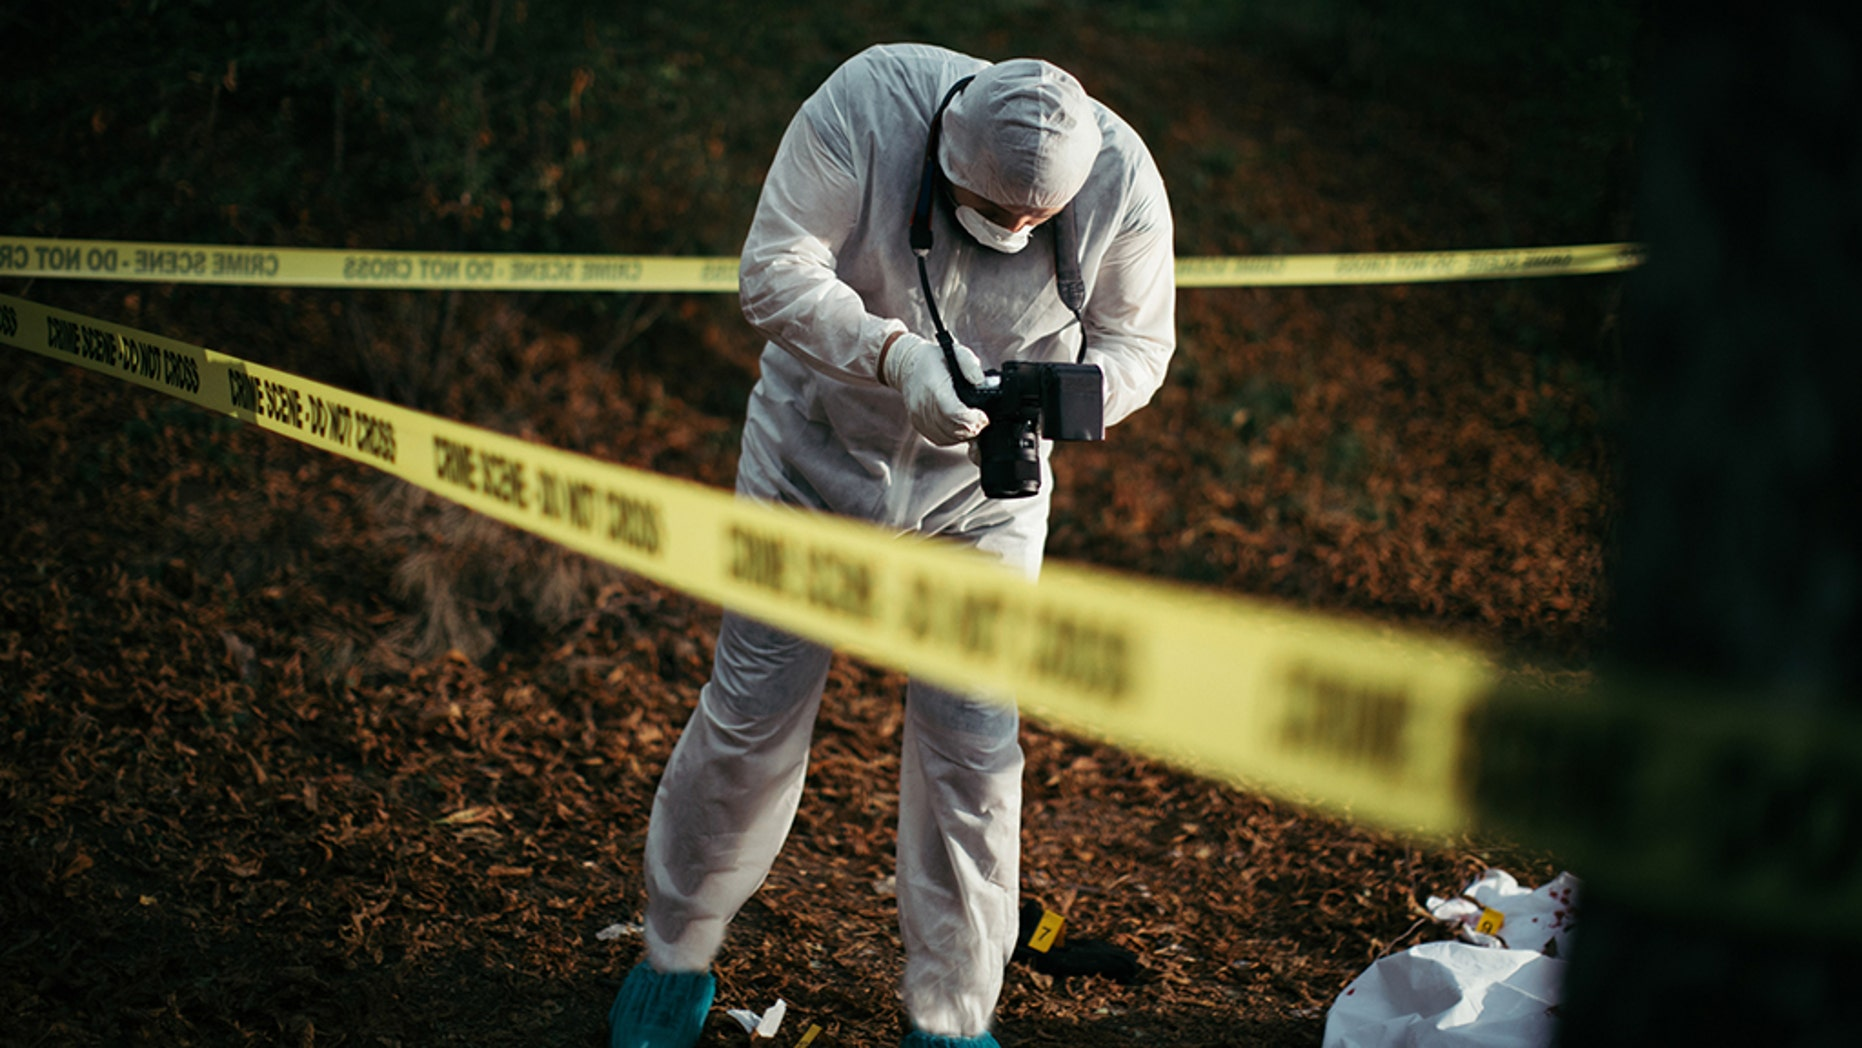 Officials do not yet know if the death is suspicious.